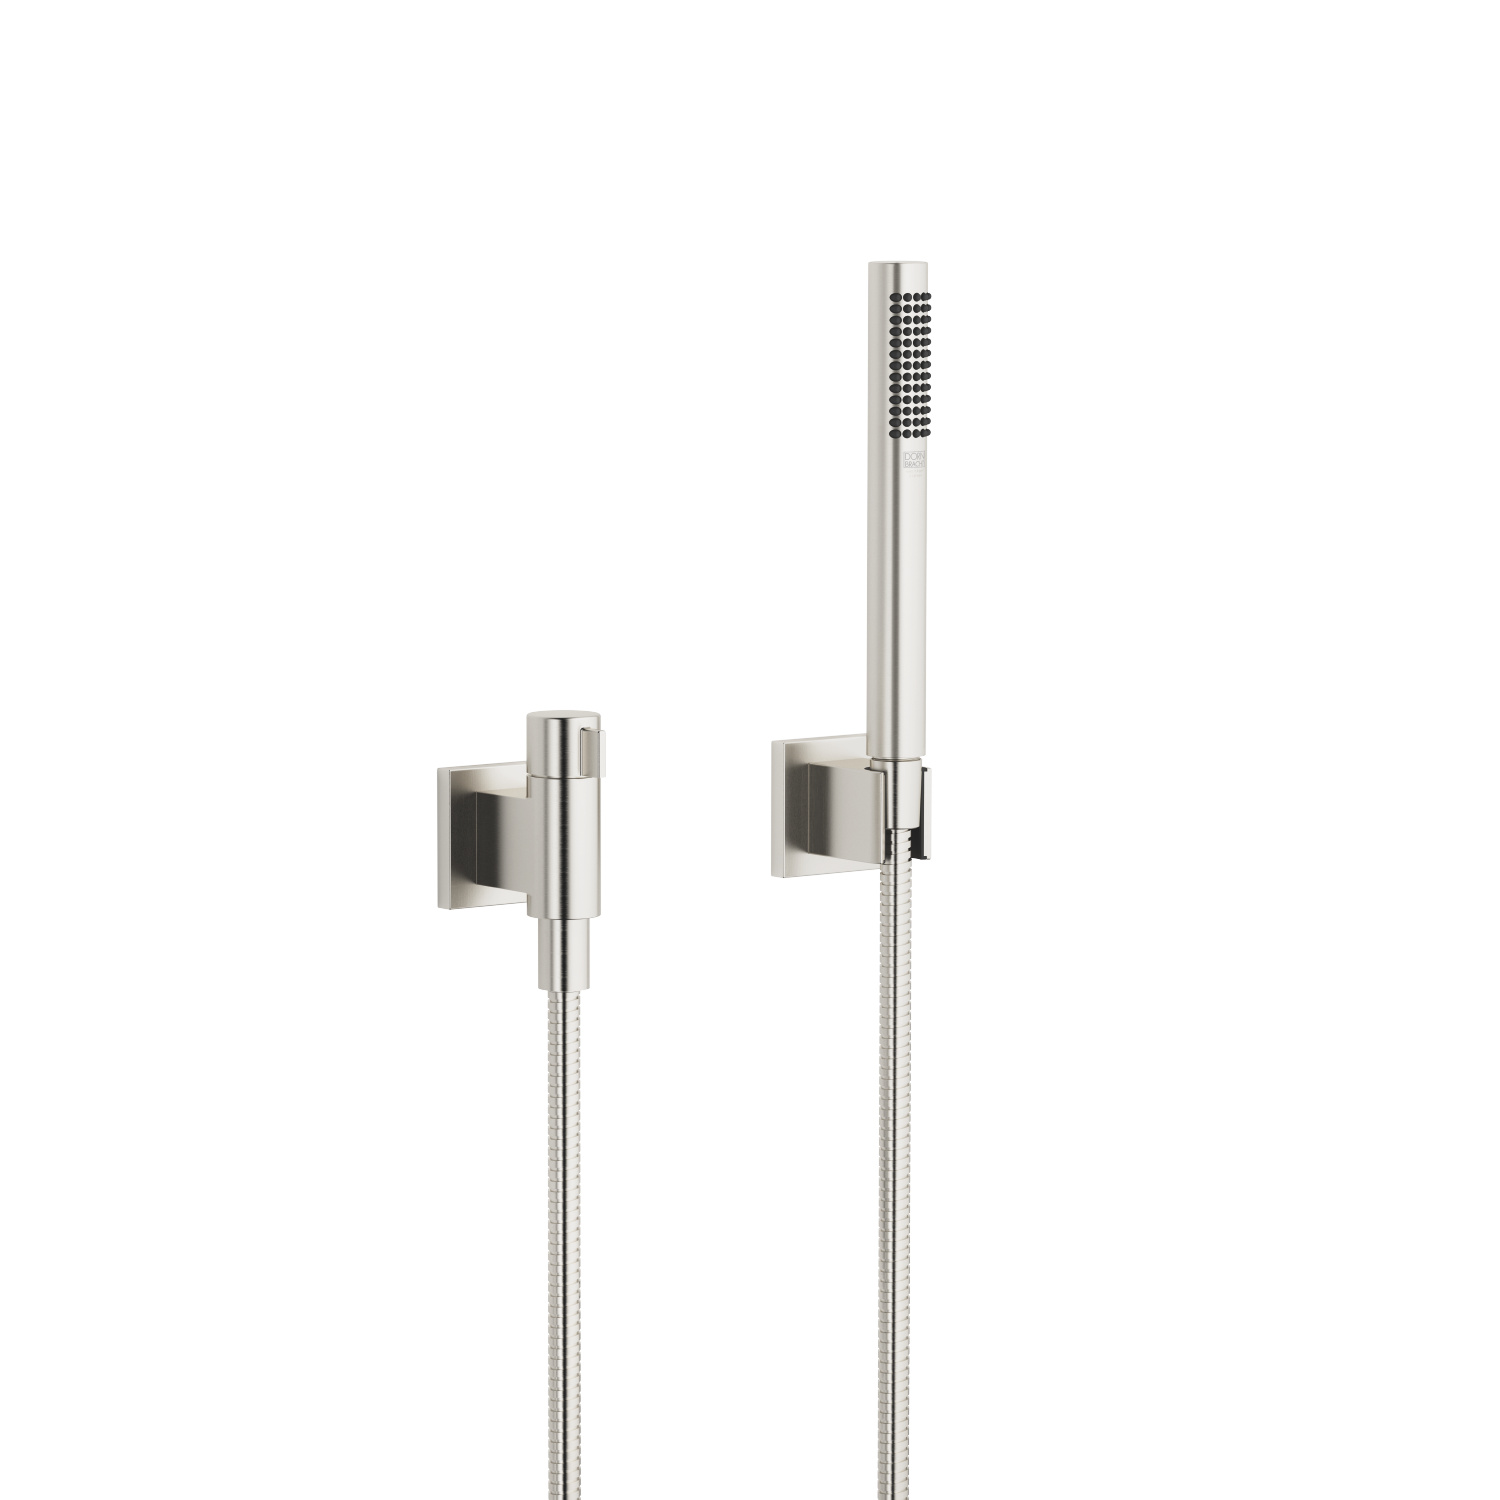 Hand shower set with individual rosettes with volume control - platinum matt